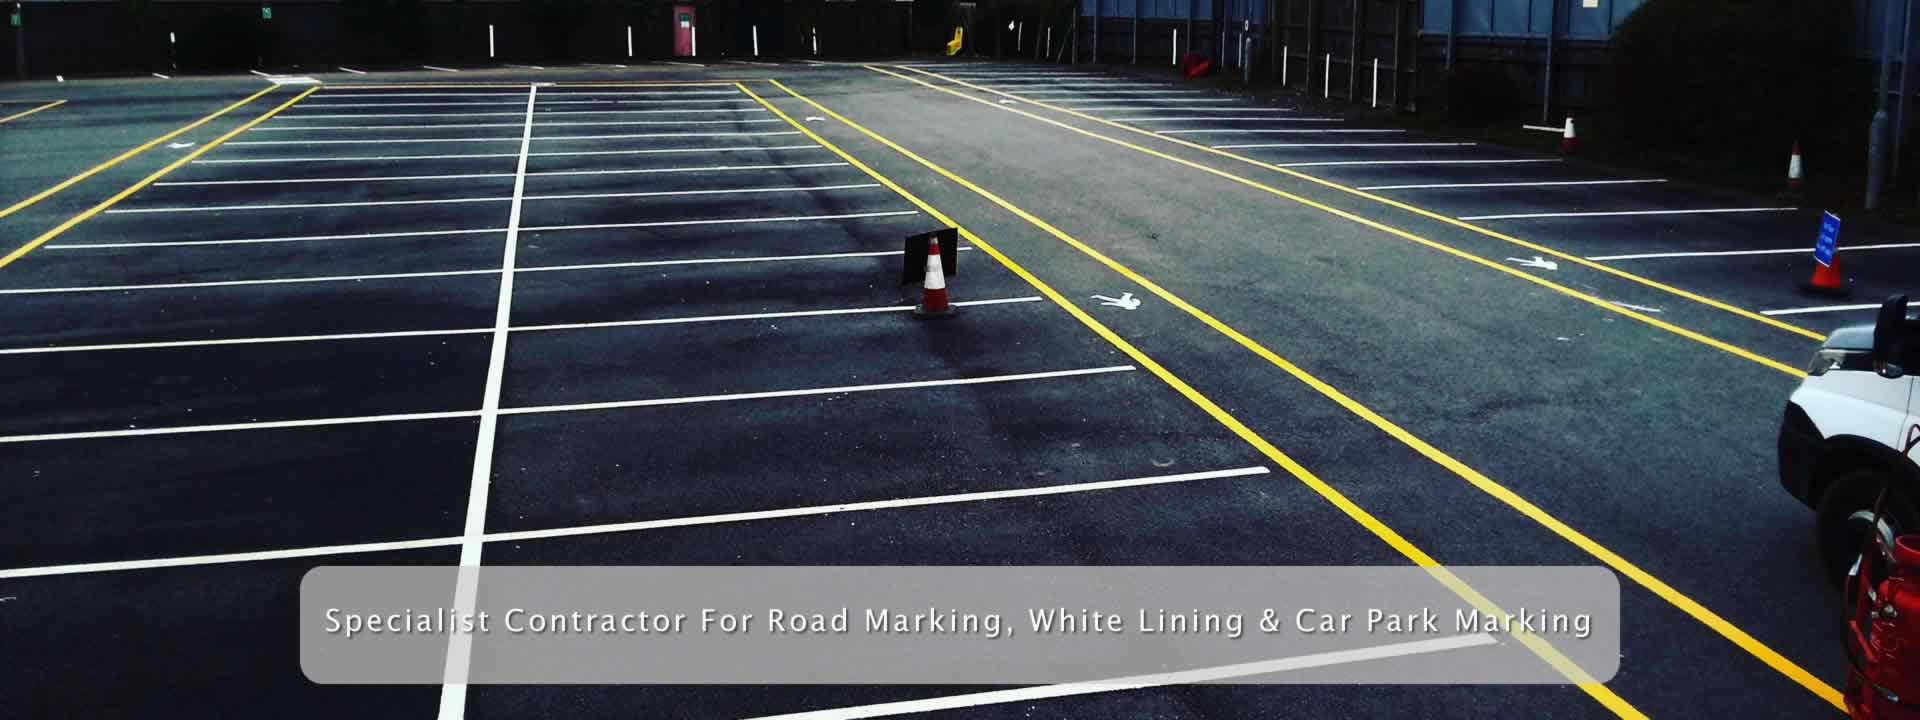 Parking Lot Line Marking Company